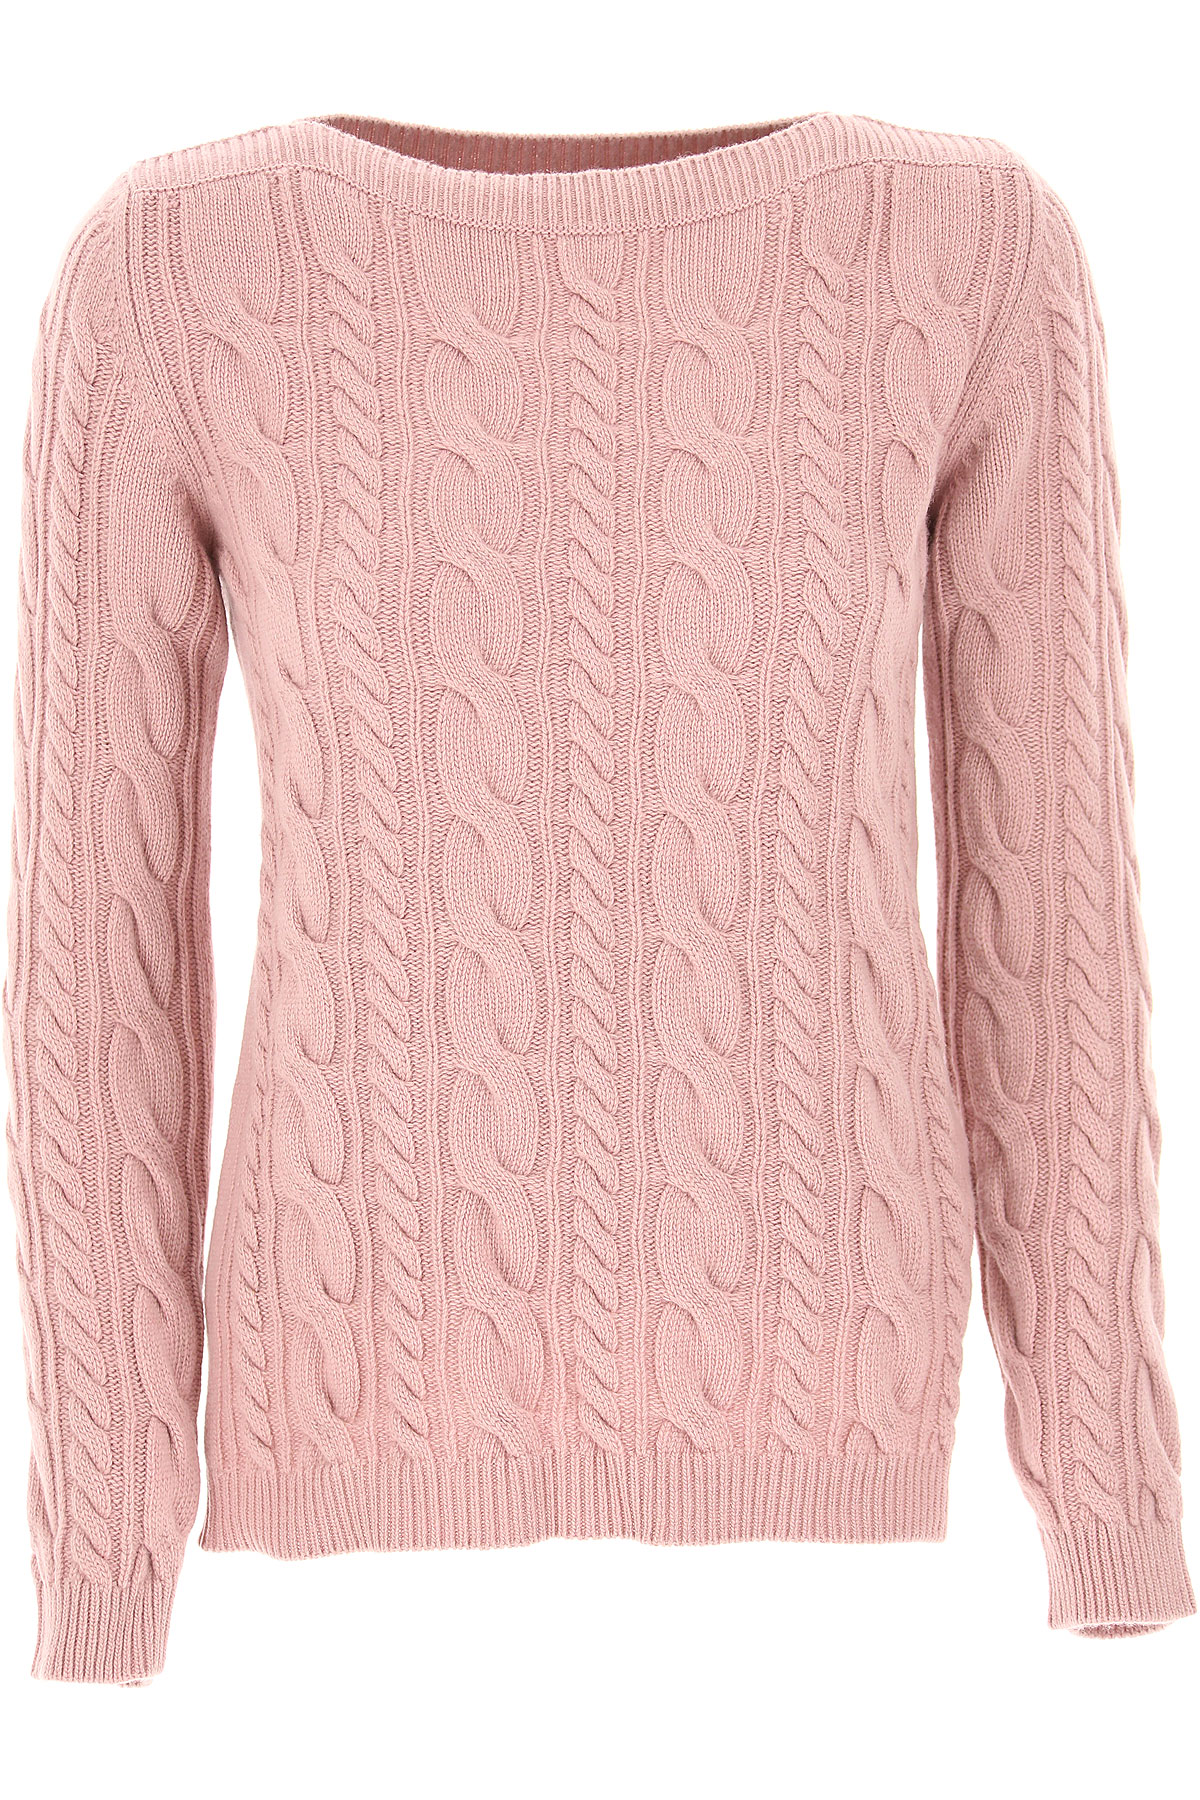 Image of Weekend by Max Mara Sweater for Women Jumper, Pink, Wool, 2017, 6 8